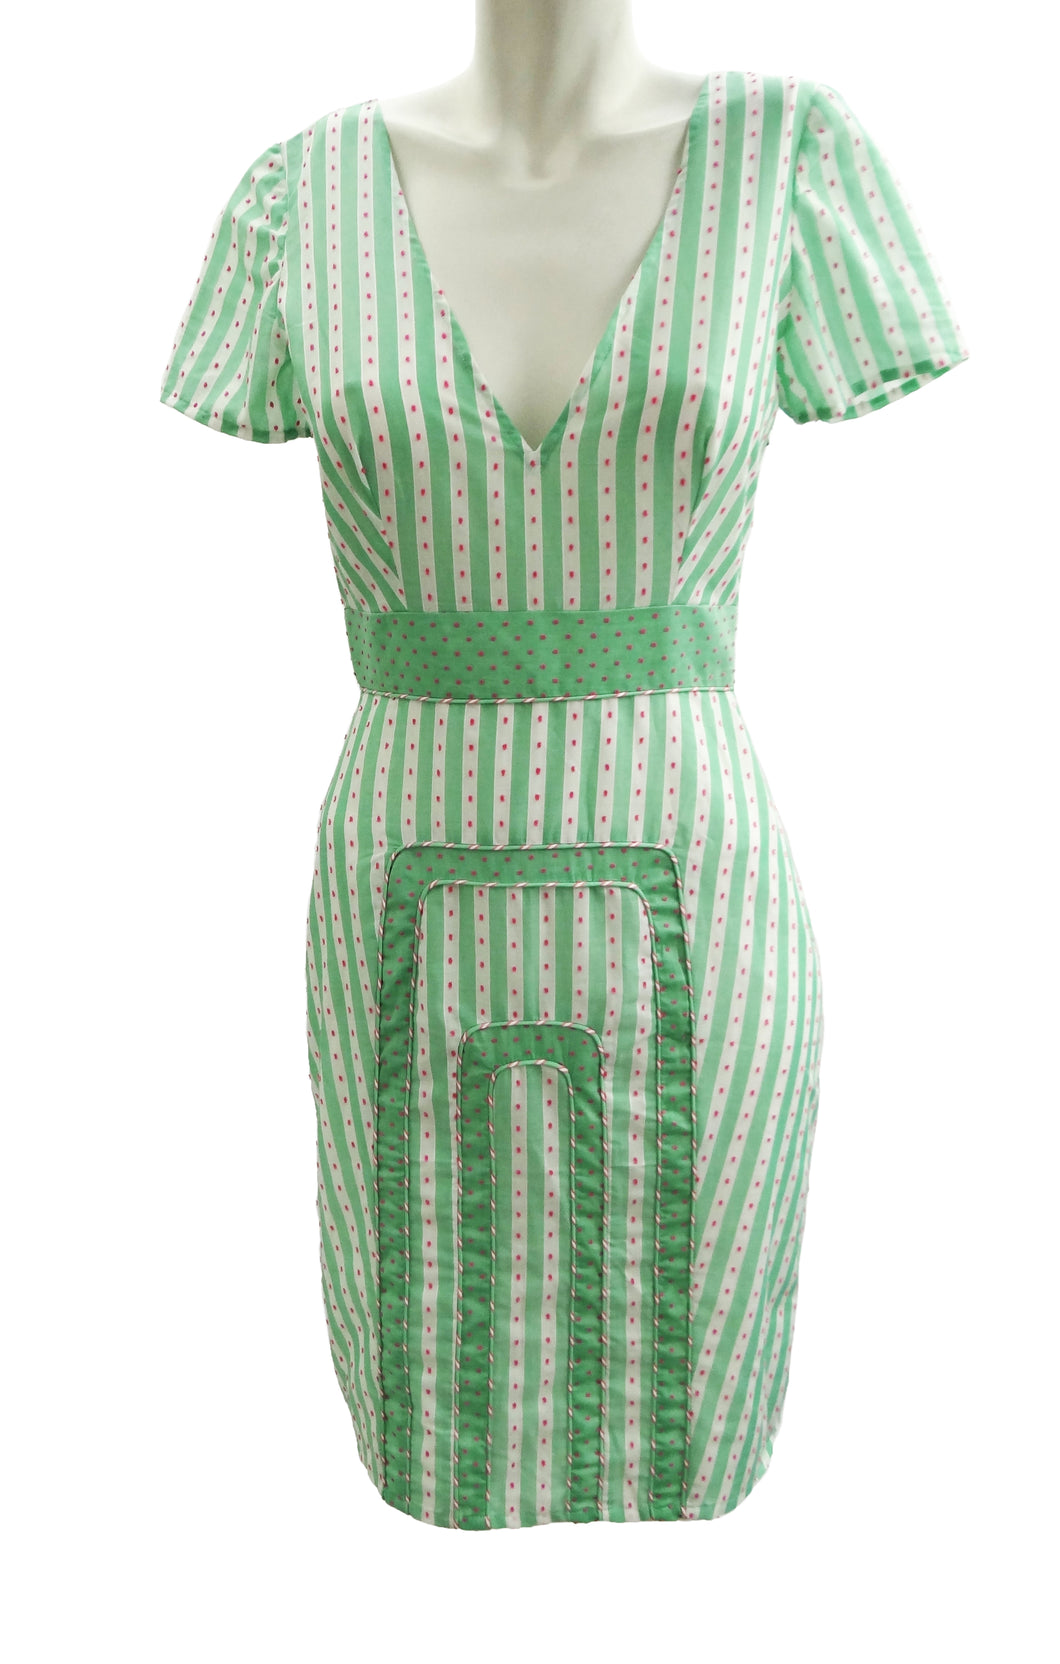 Mint Green Candy Stripe Summer Dress with Pink Embroidery, UK10